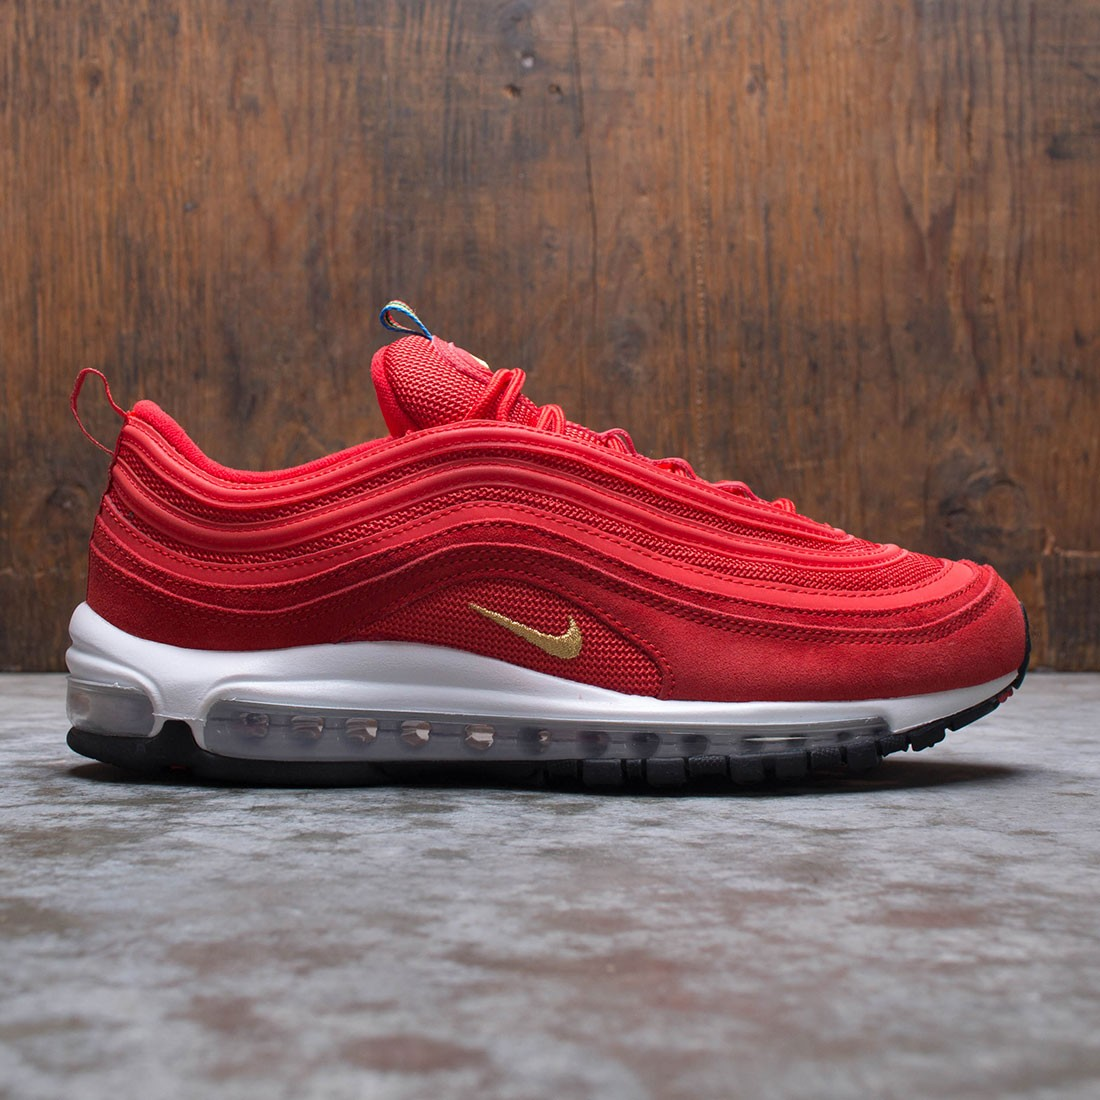 Nike Men Air Max 97 Challenge Red Metallic Gold White Black